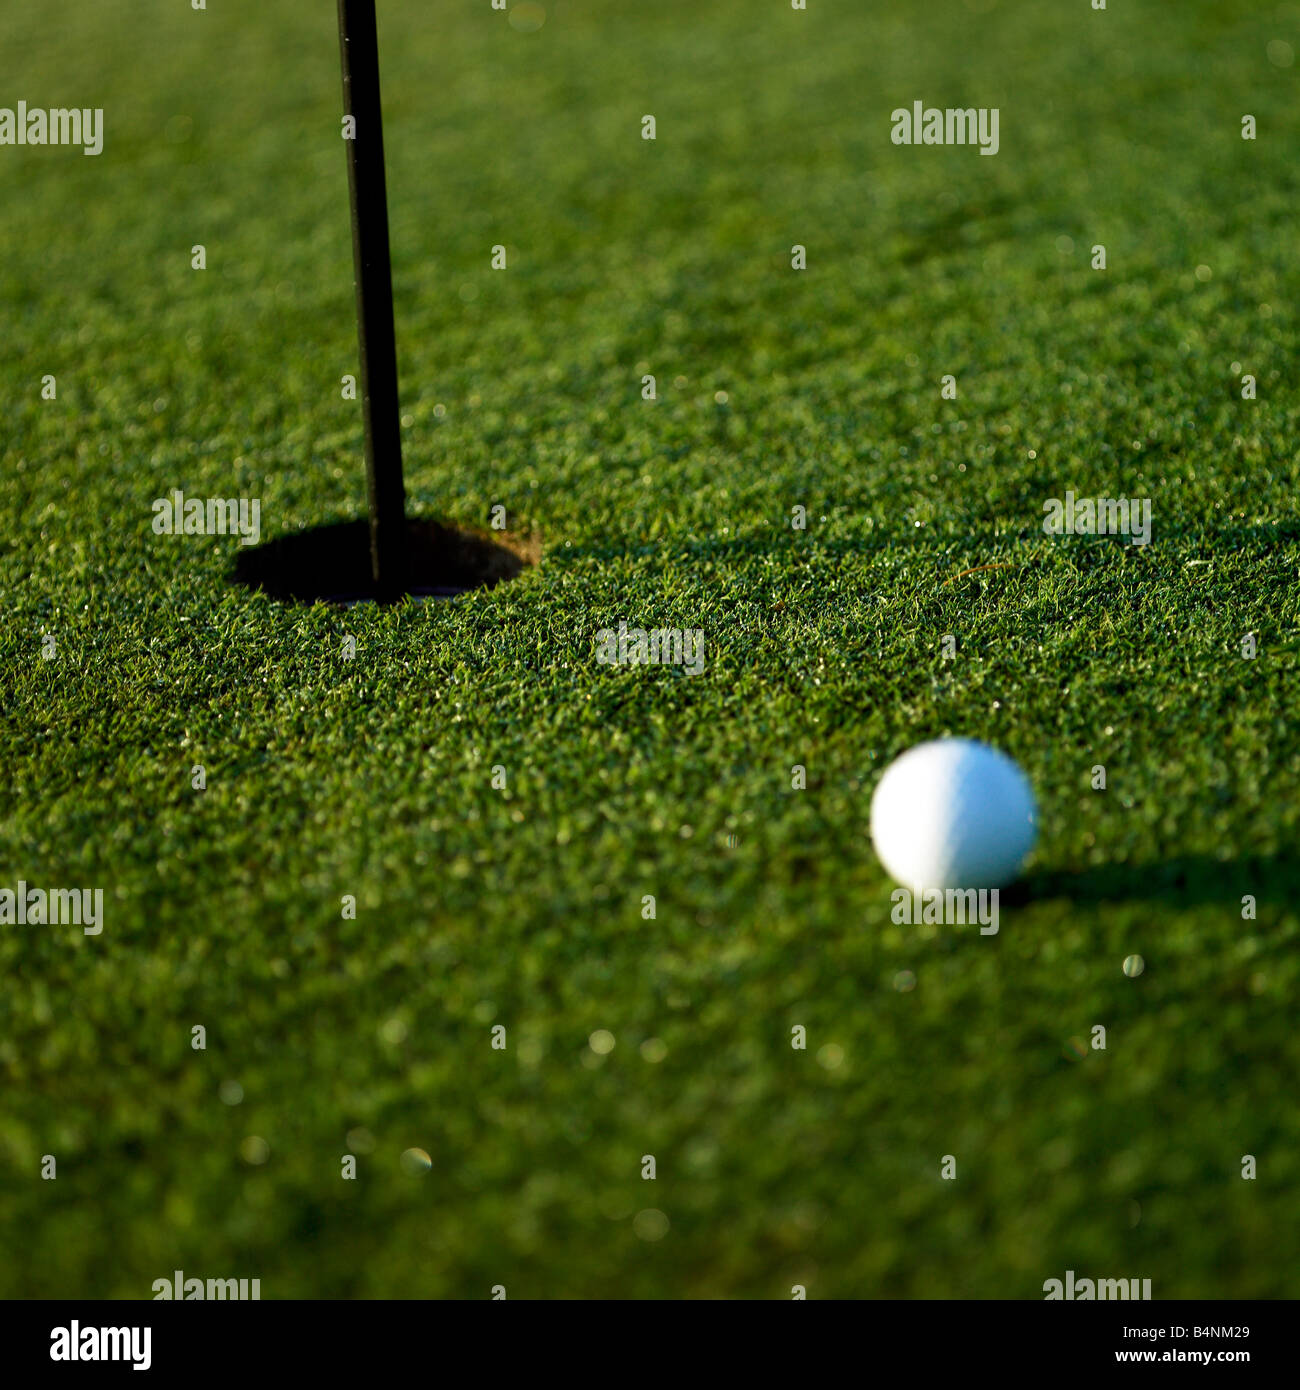 Freshly cut putting green - Stock Image